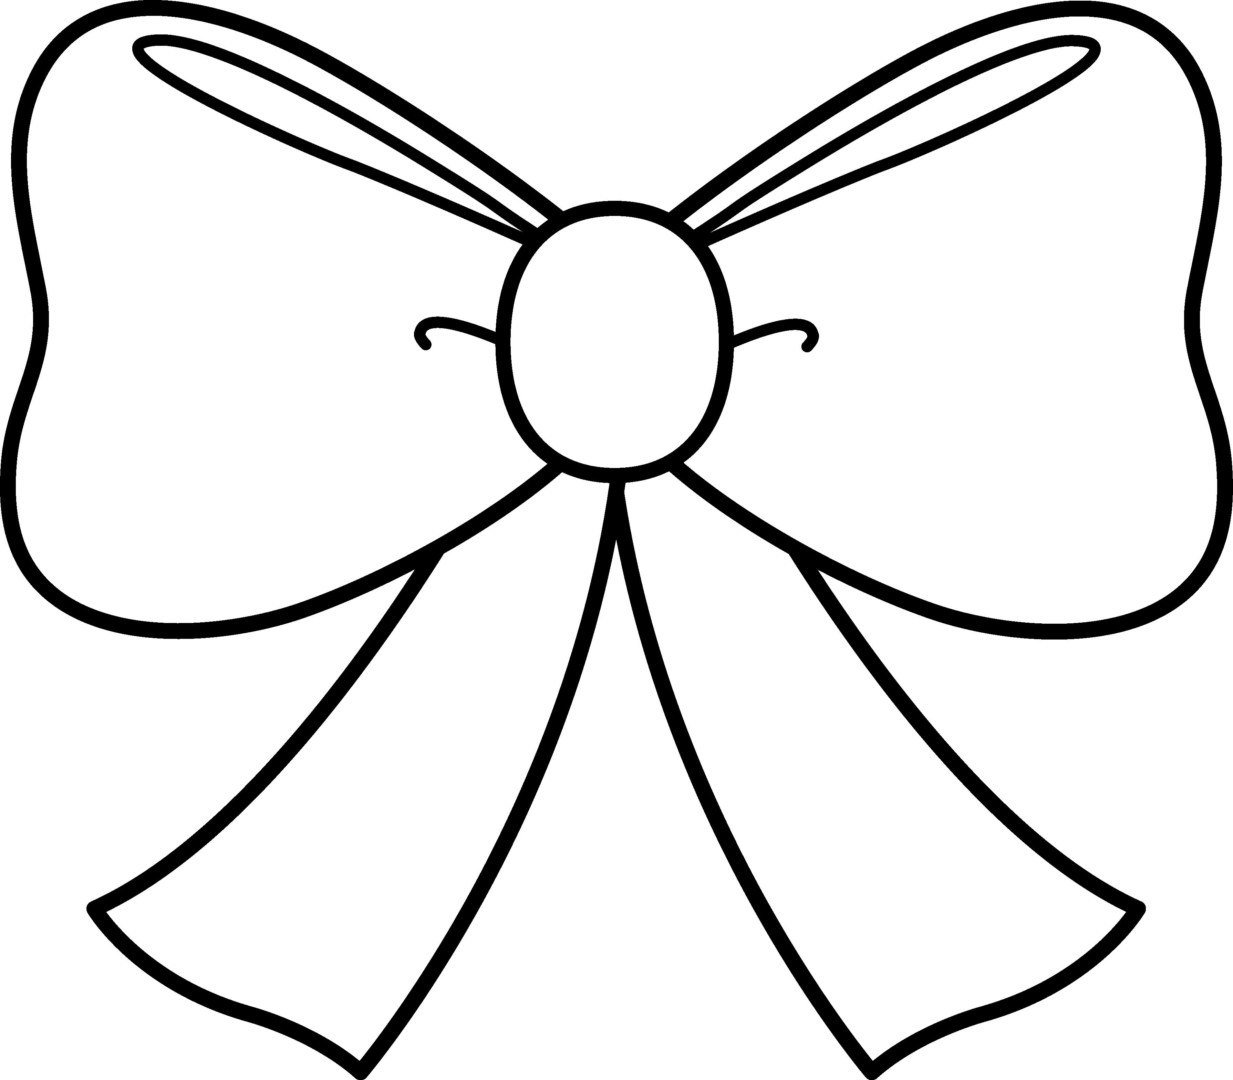 1233x1080 Coloring Pages For Girls Bows Just Colorings